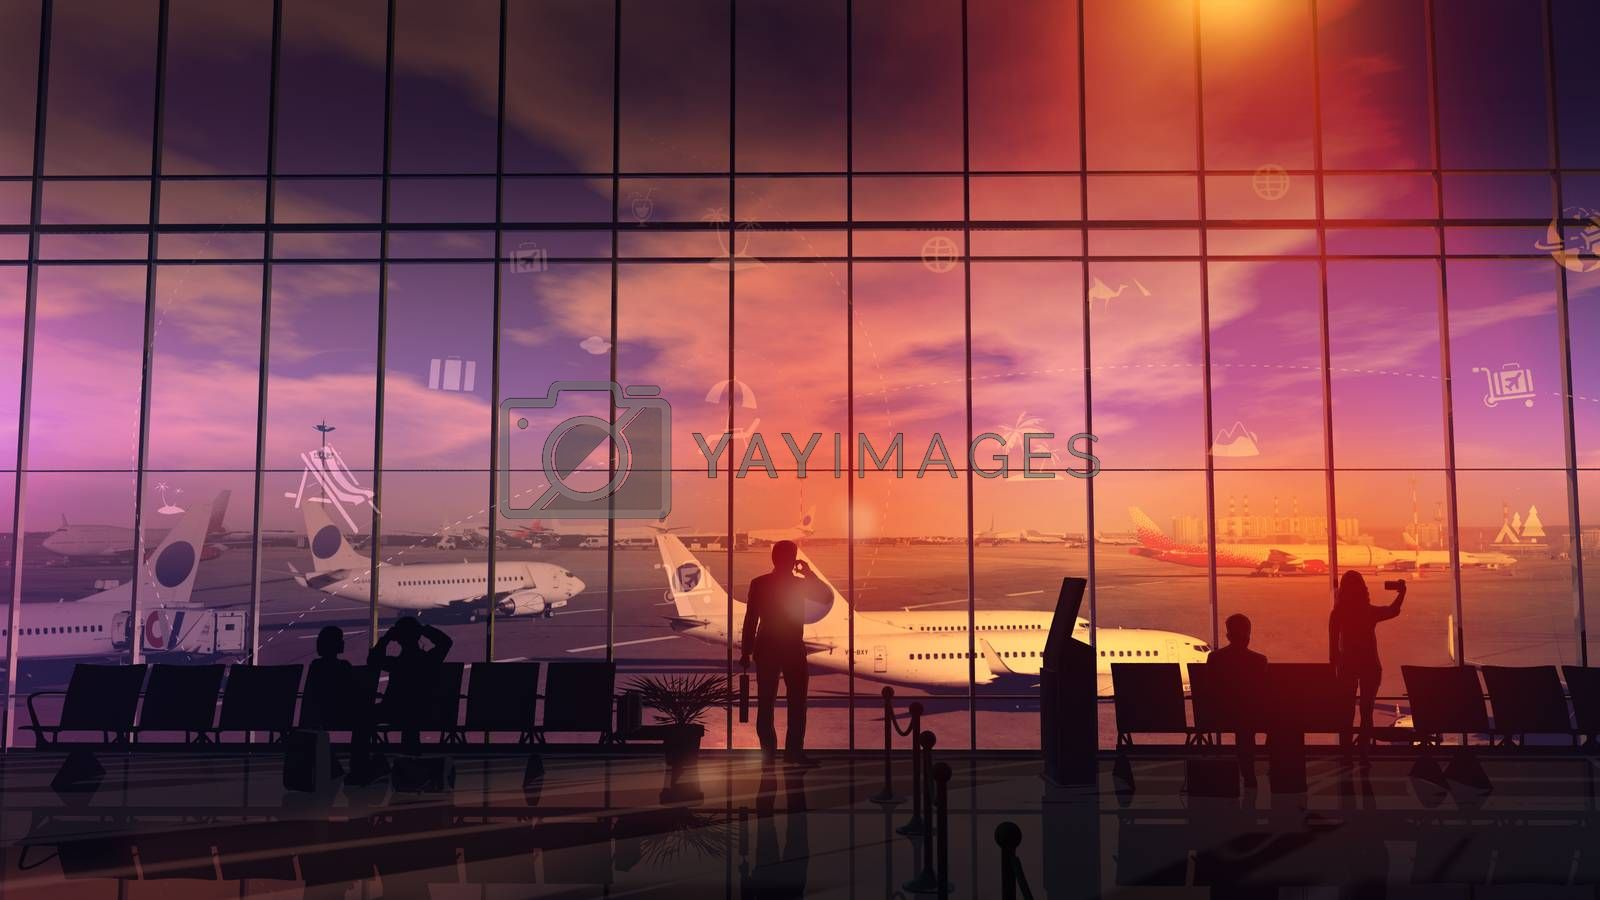 Silhouettes stand in front of a large window in the airport departure hall before a big trip.